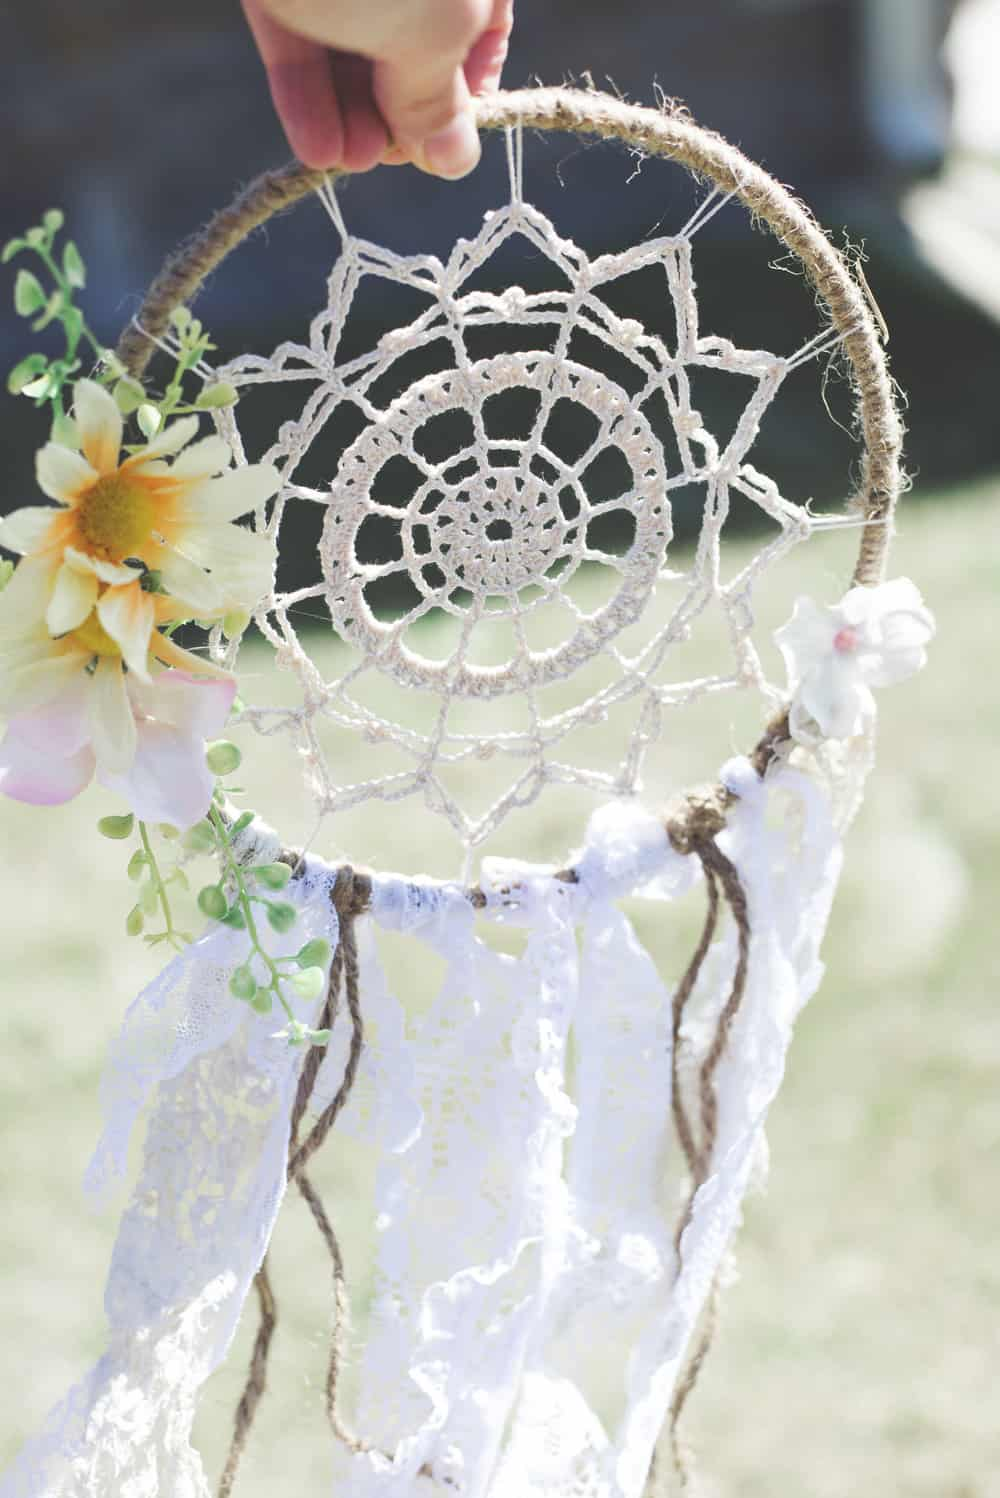 Picture of a dreamcatcher with the centre web made from crochet, with spring flowers on the side and lace tails